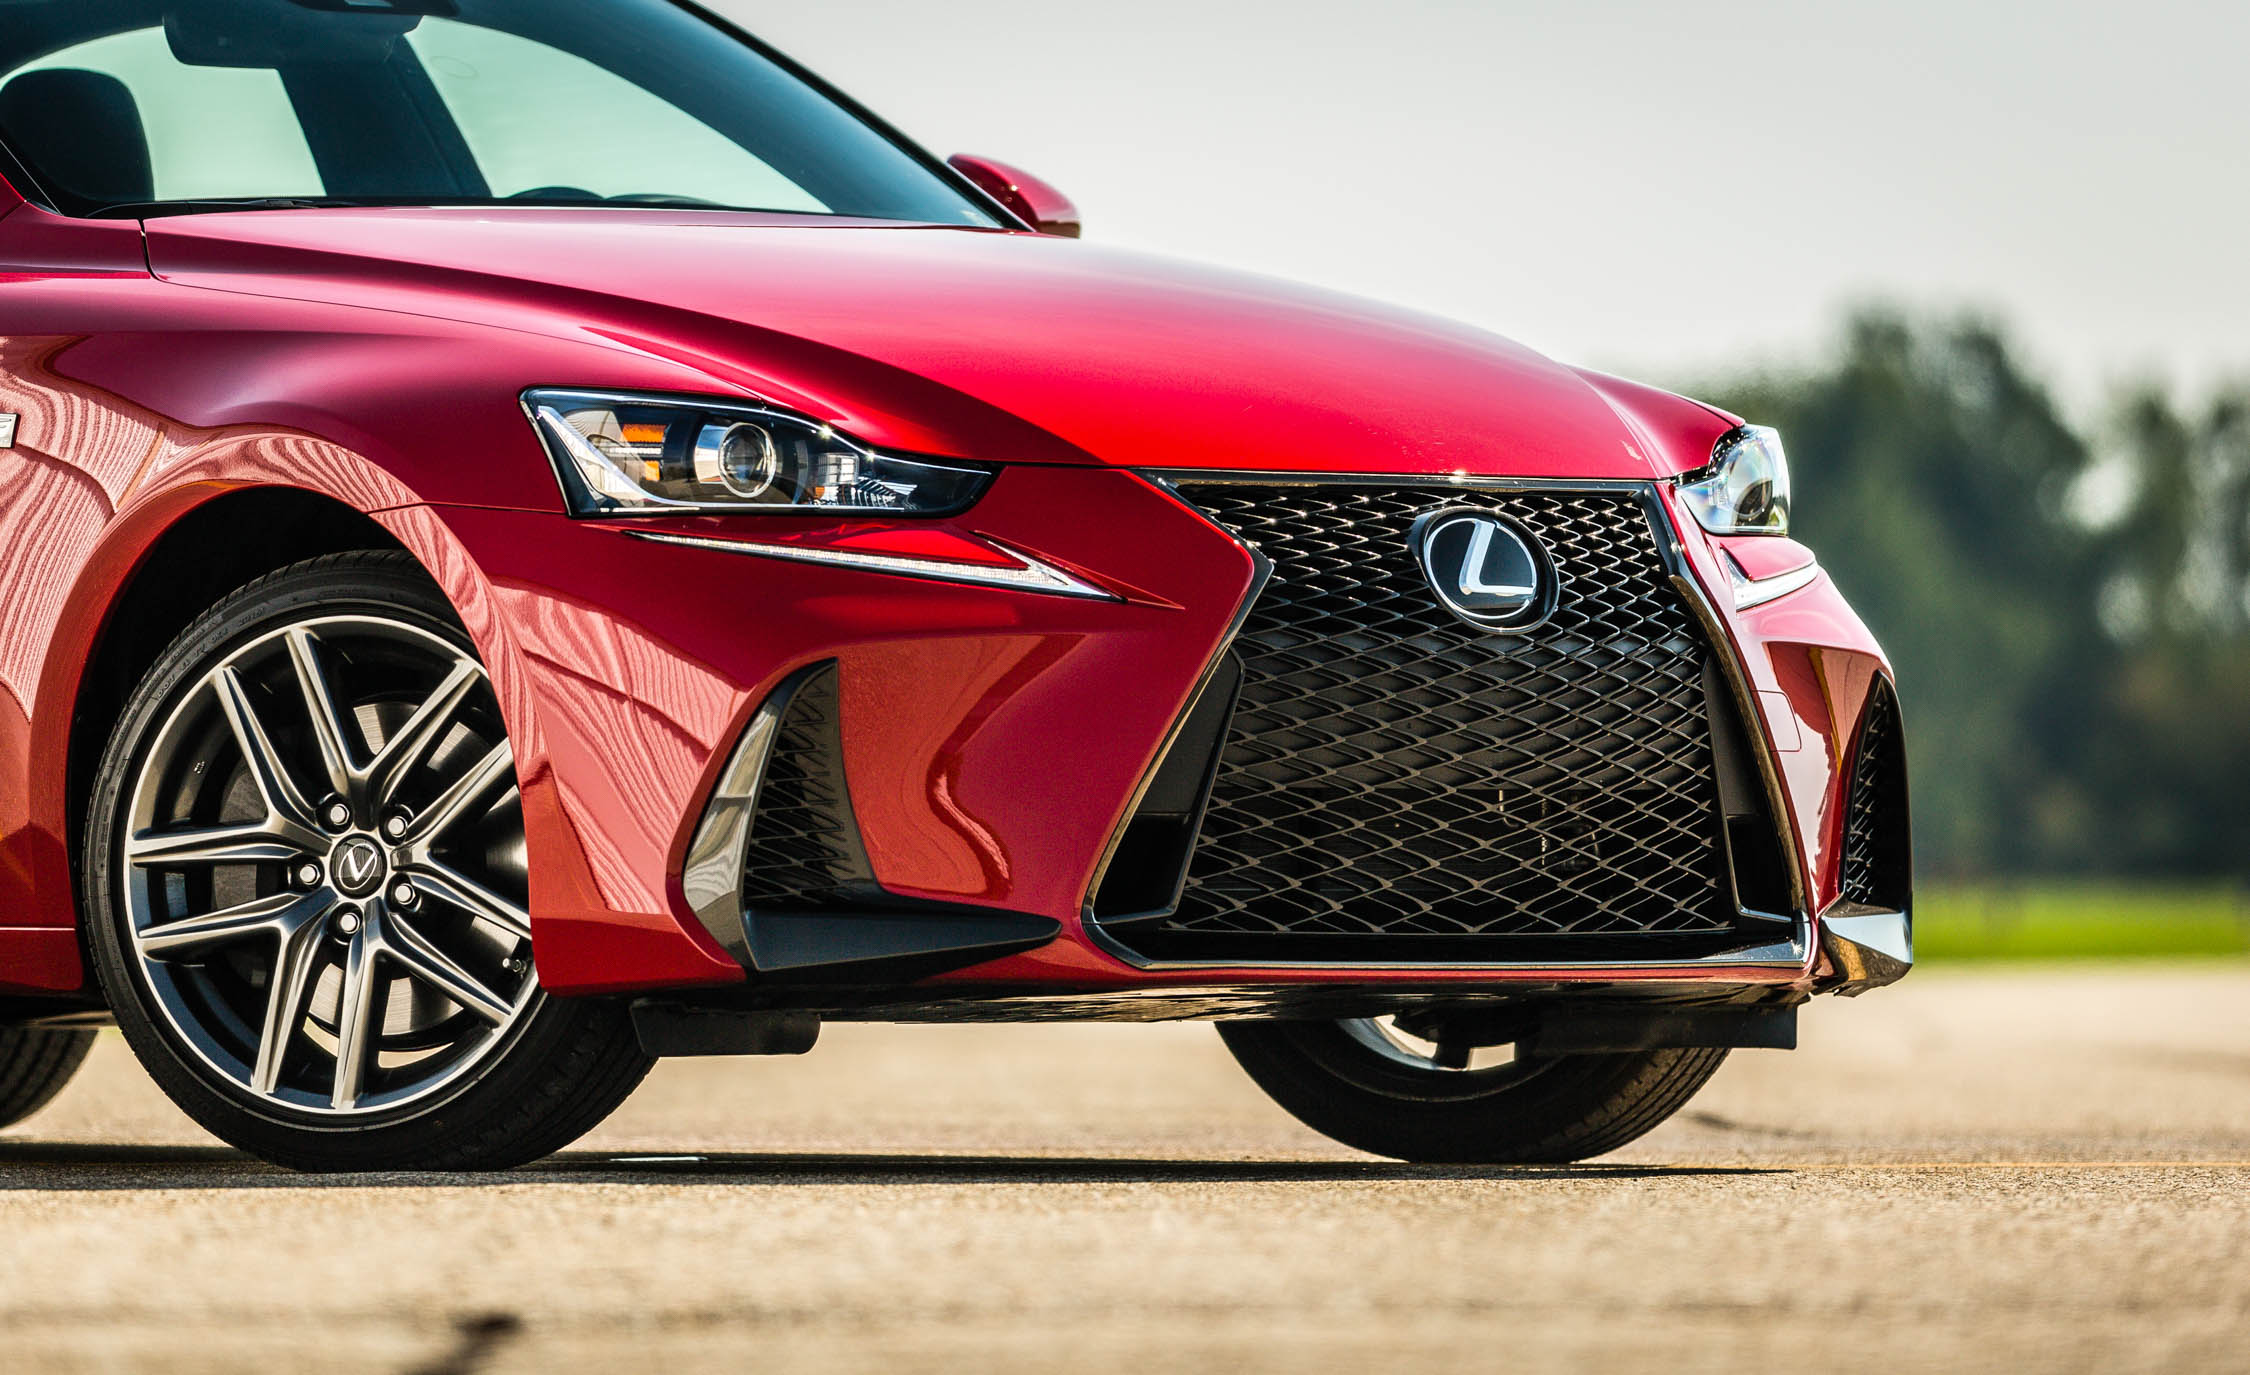 2017 Lexus IS 200t F Sport Red Exterior View Front Bumper And Grille (Photo 20 of 29)